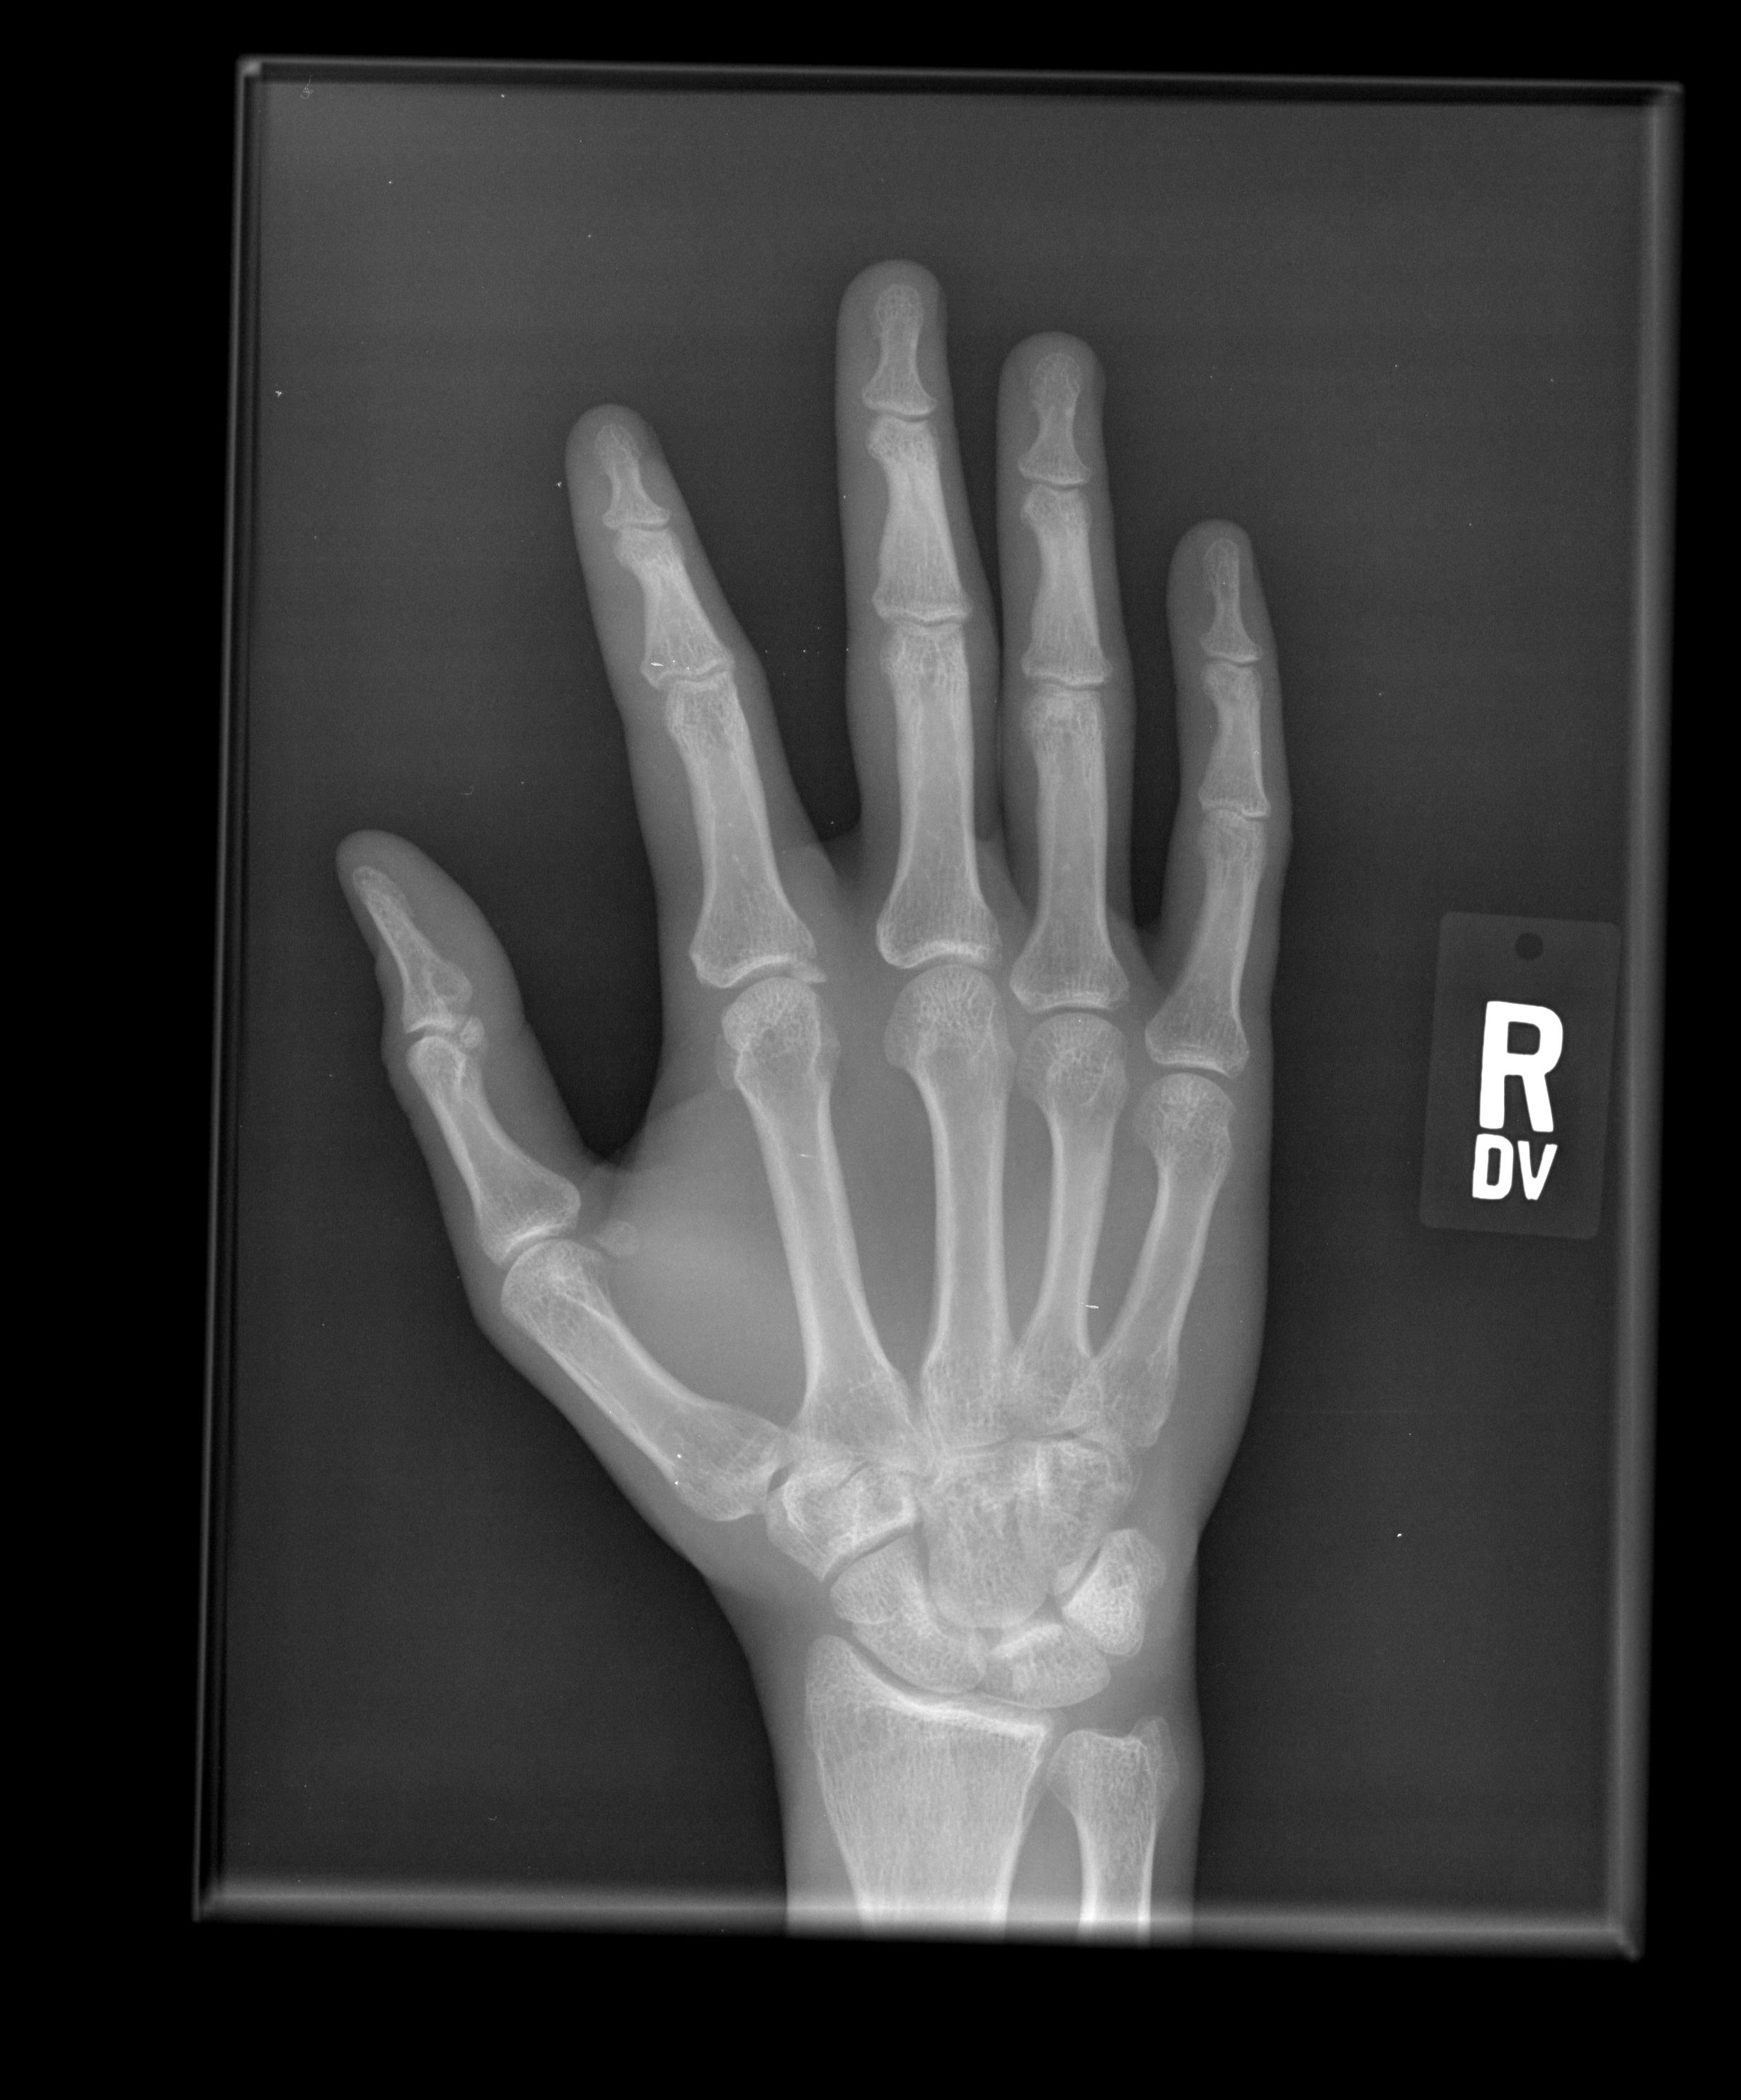 Radiography Program Open House To Celebrate The Discovery Of X Rays Nov 12 And 13